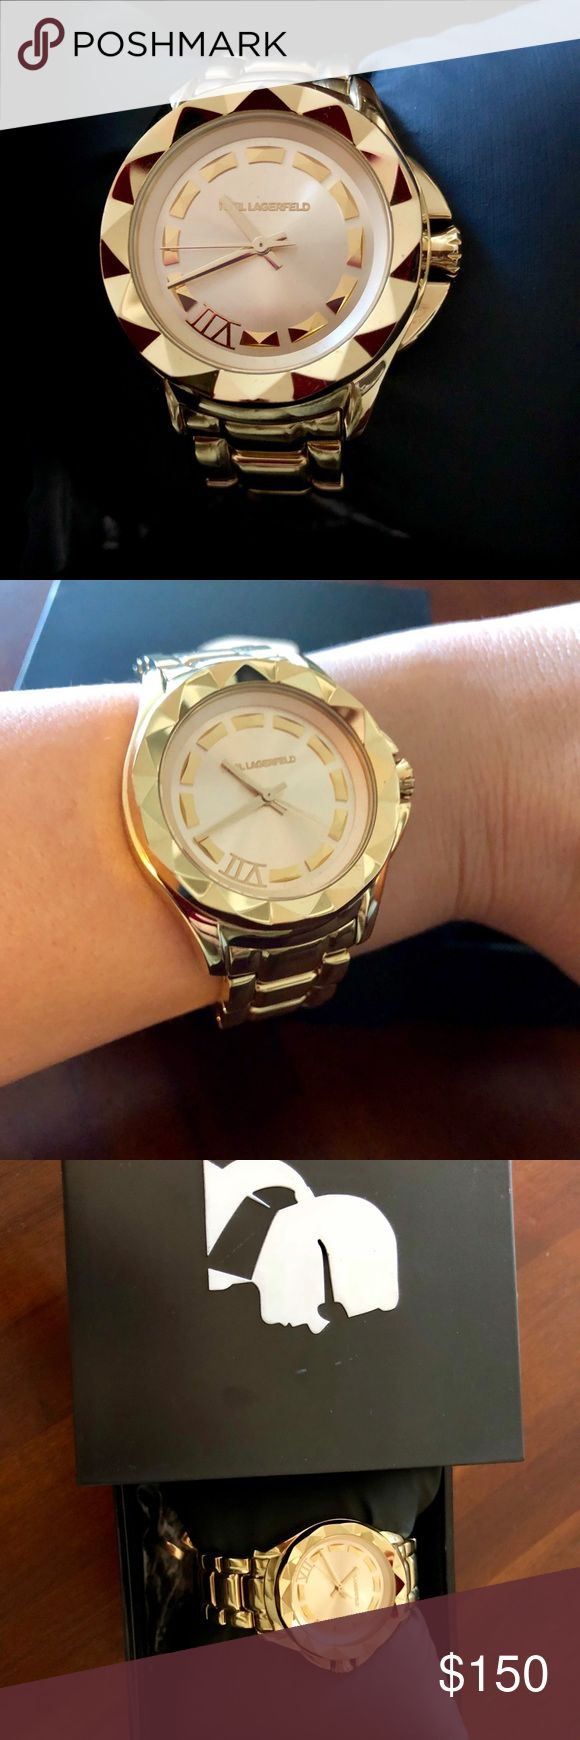 Barely worn Karl Lagerfeld gold watch This watch has only been worn a handful of times and is in near perfect (and working) condition! I have all pieces in case adjustments need to be made. Karl Lagerfeld Accessories Watches